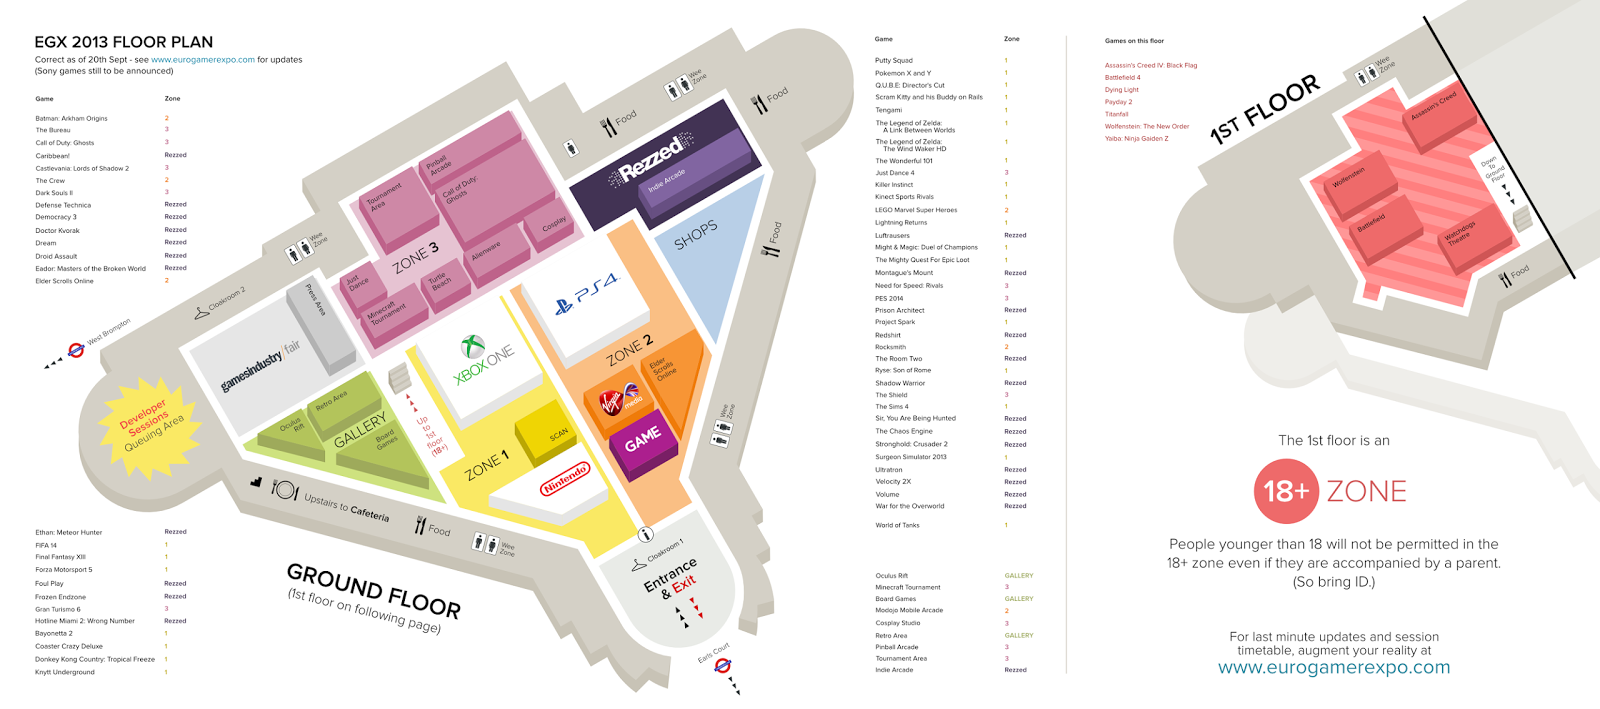 This is the floor plan from 2013's Expo... now do you see why you need a plan?